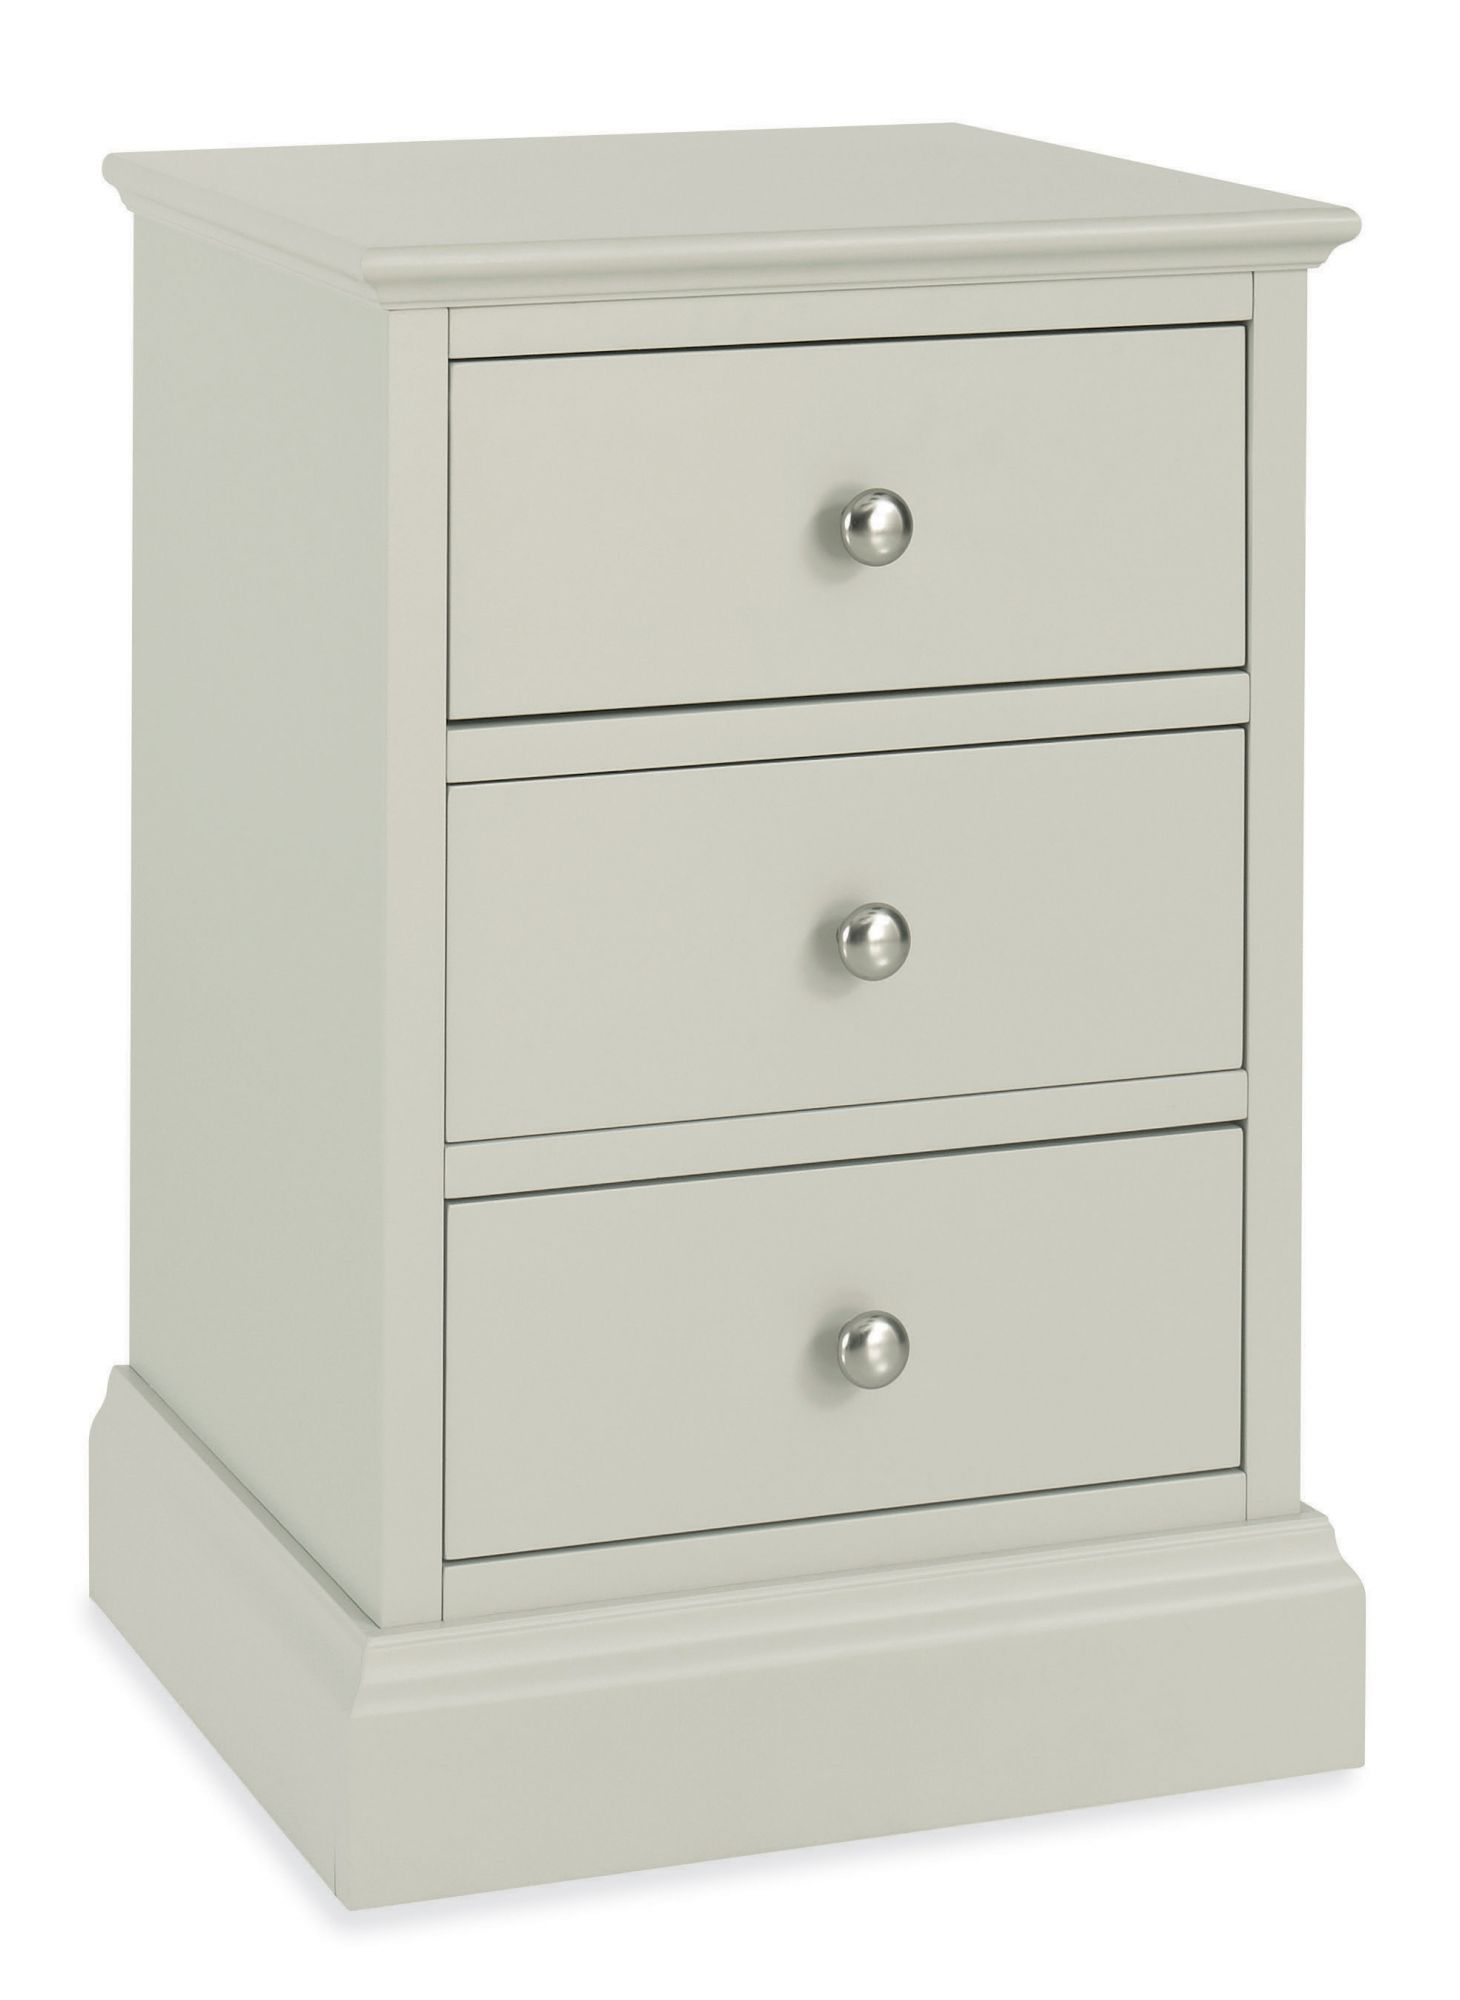 Photo of Bentley designs ashby cotton 3 drawer nightstand